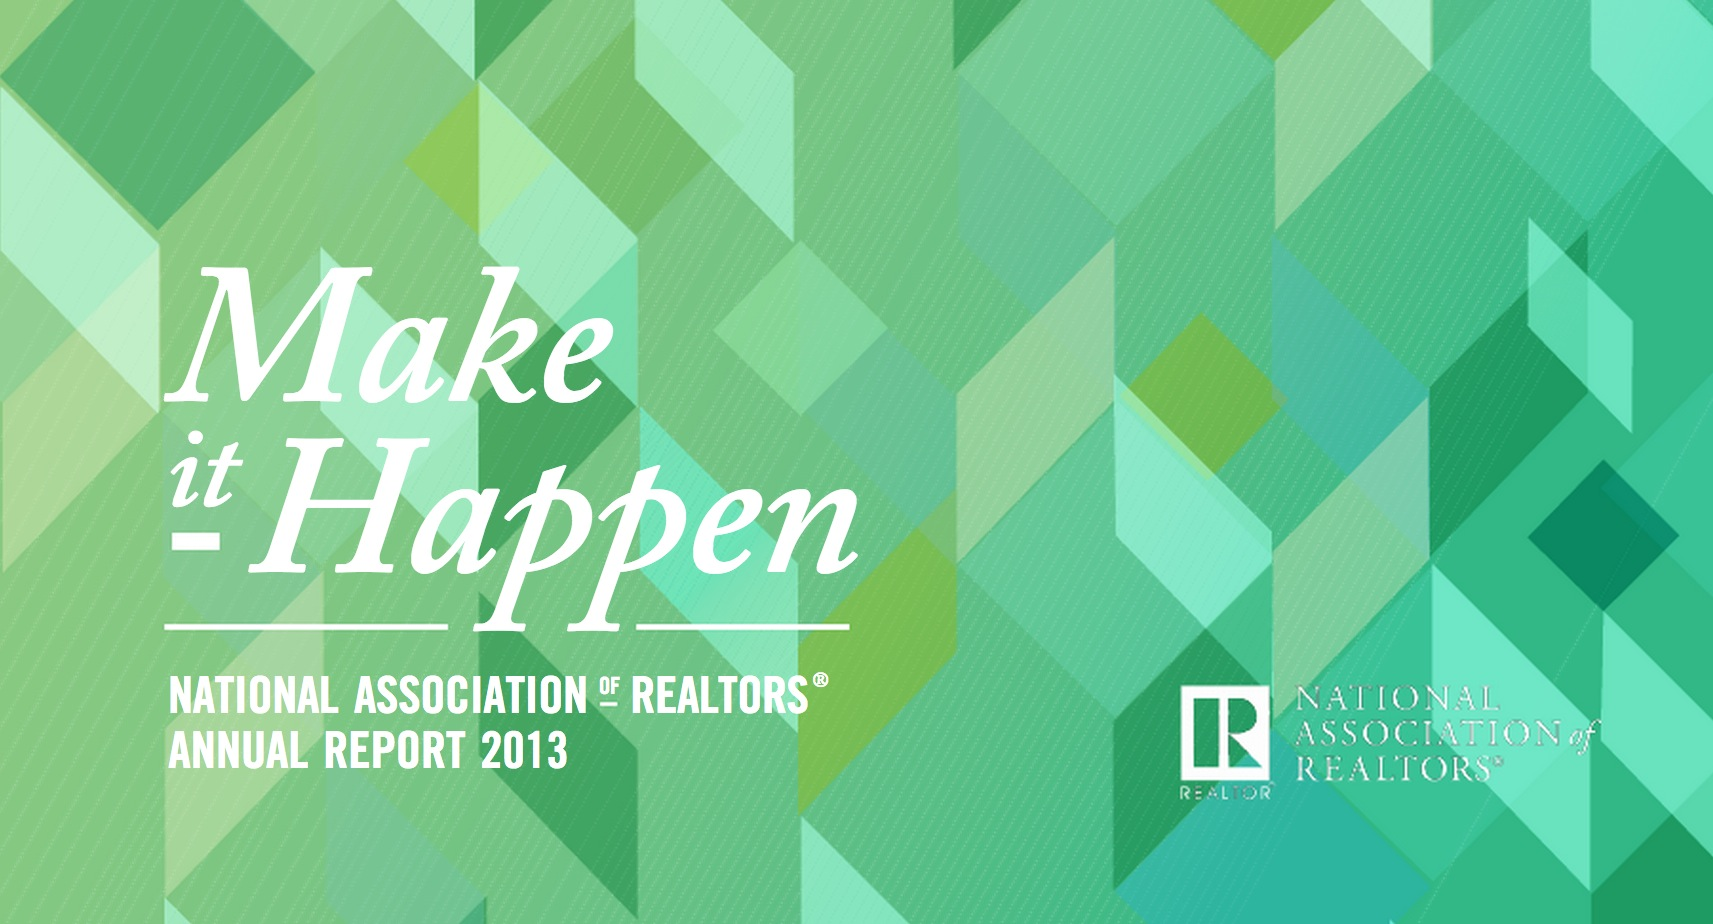 National Association of Realtors 2013 Annual Report